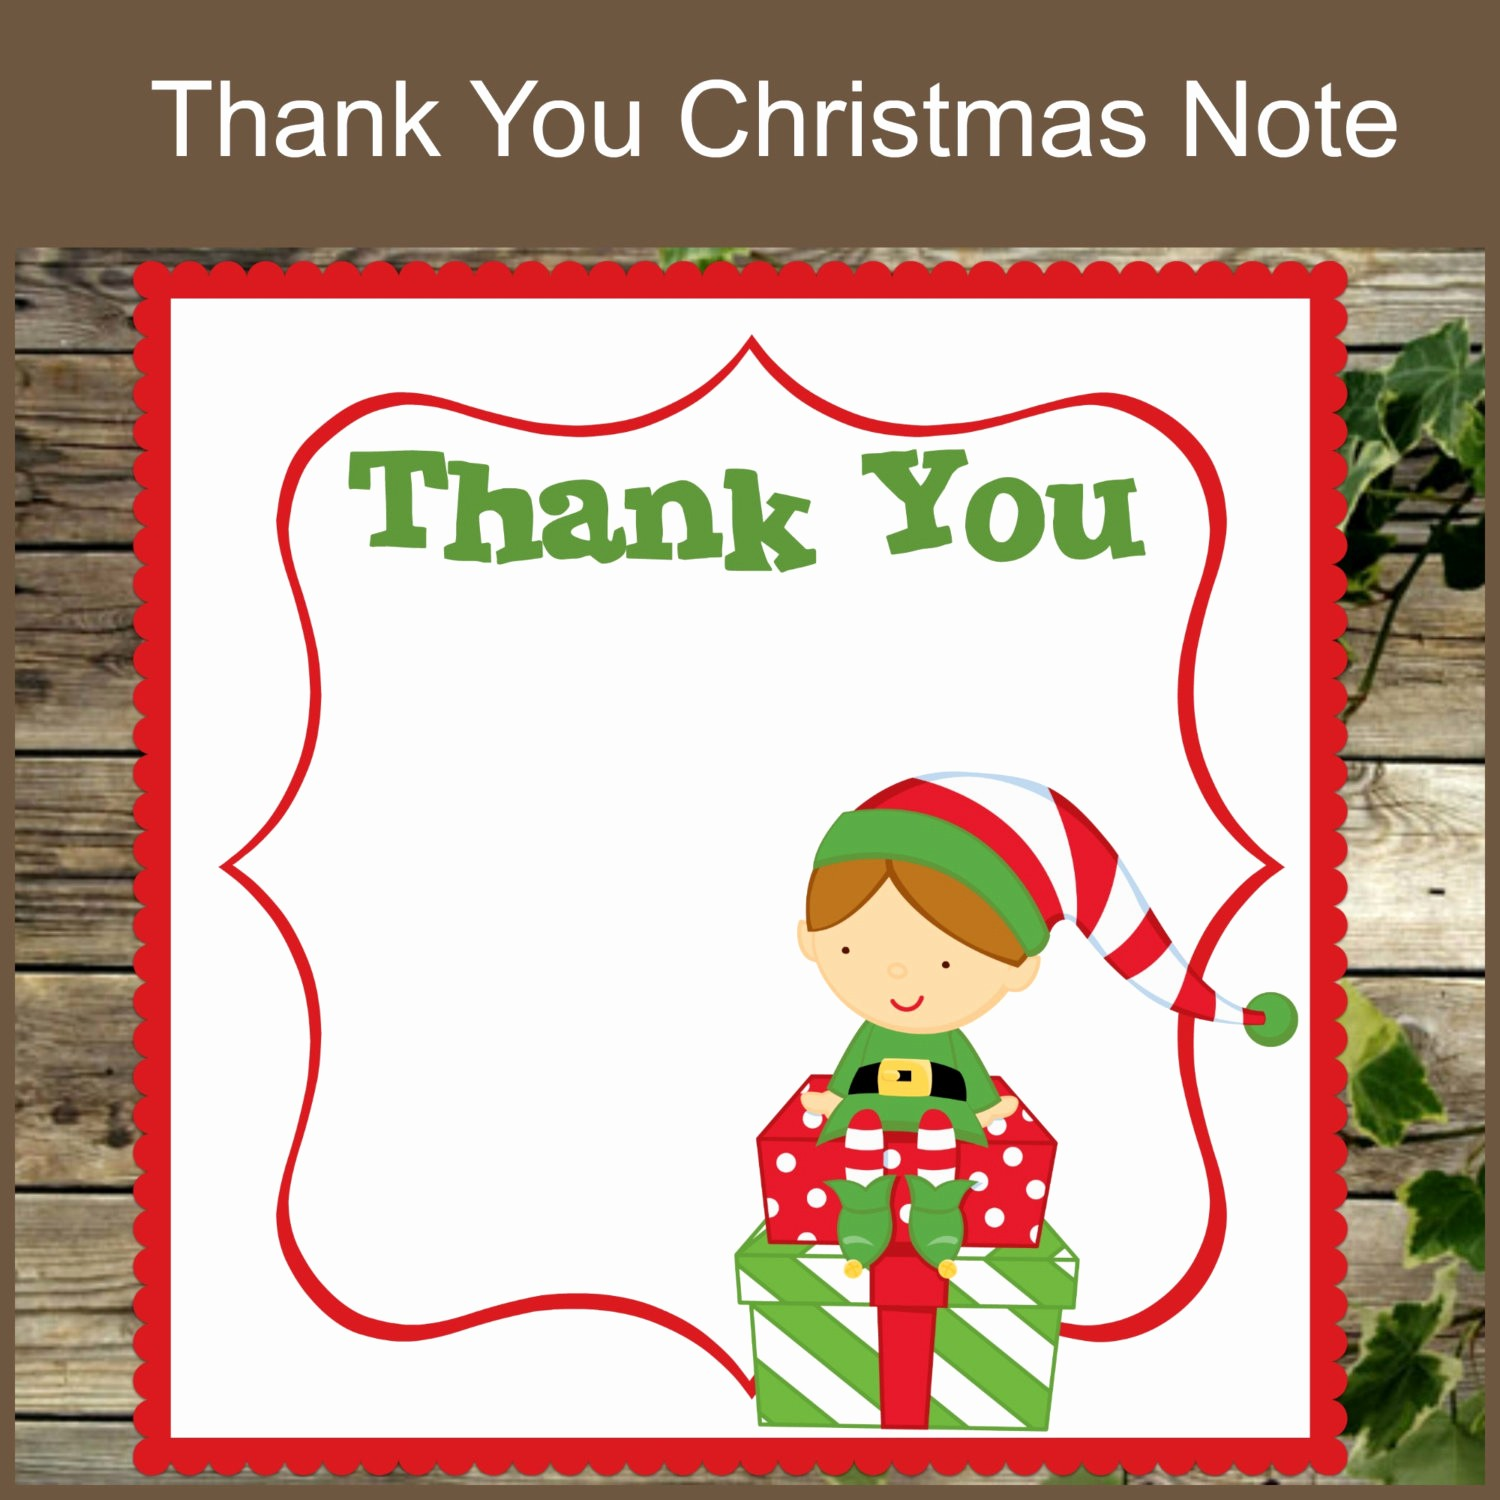 Thank You Note Cards Template Beautiful Christmas Thank You Note Printable Christmas Stationery